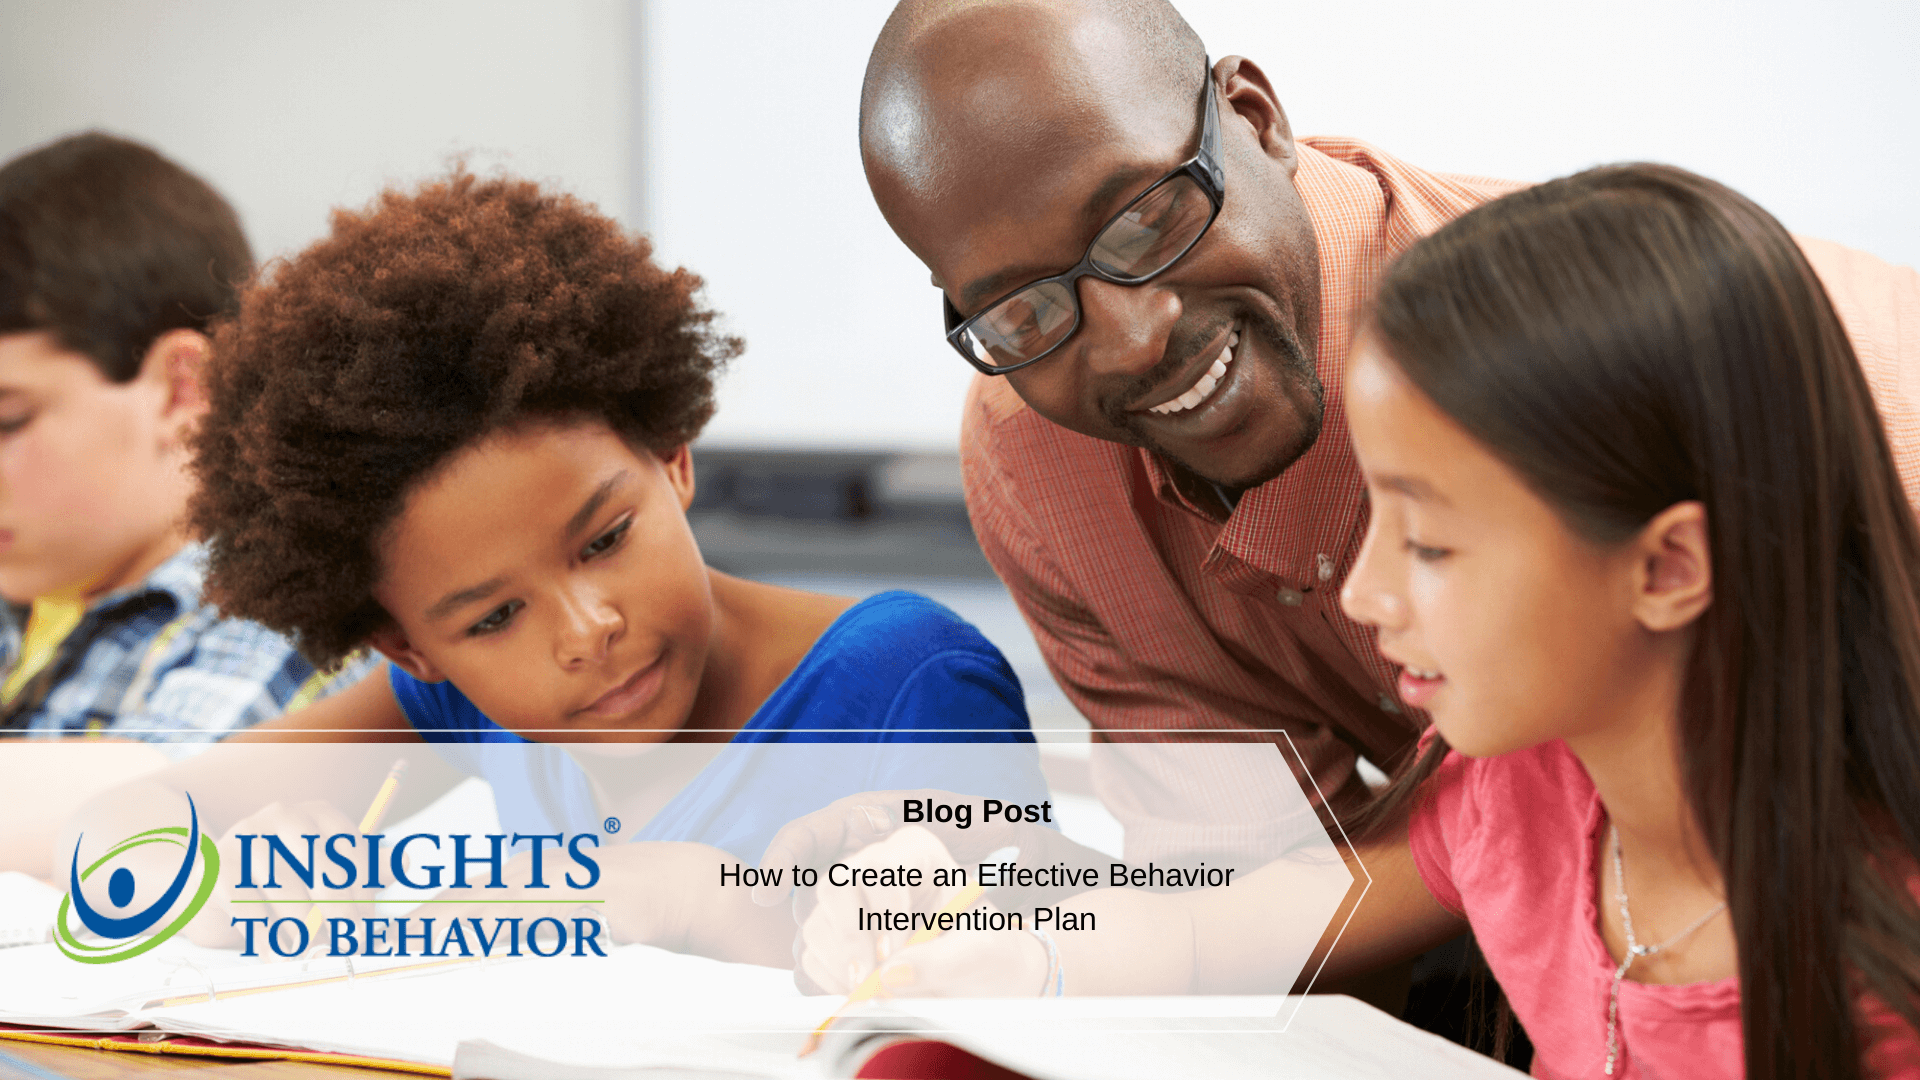 Insights to behavior blog post image template (4)